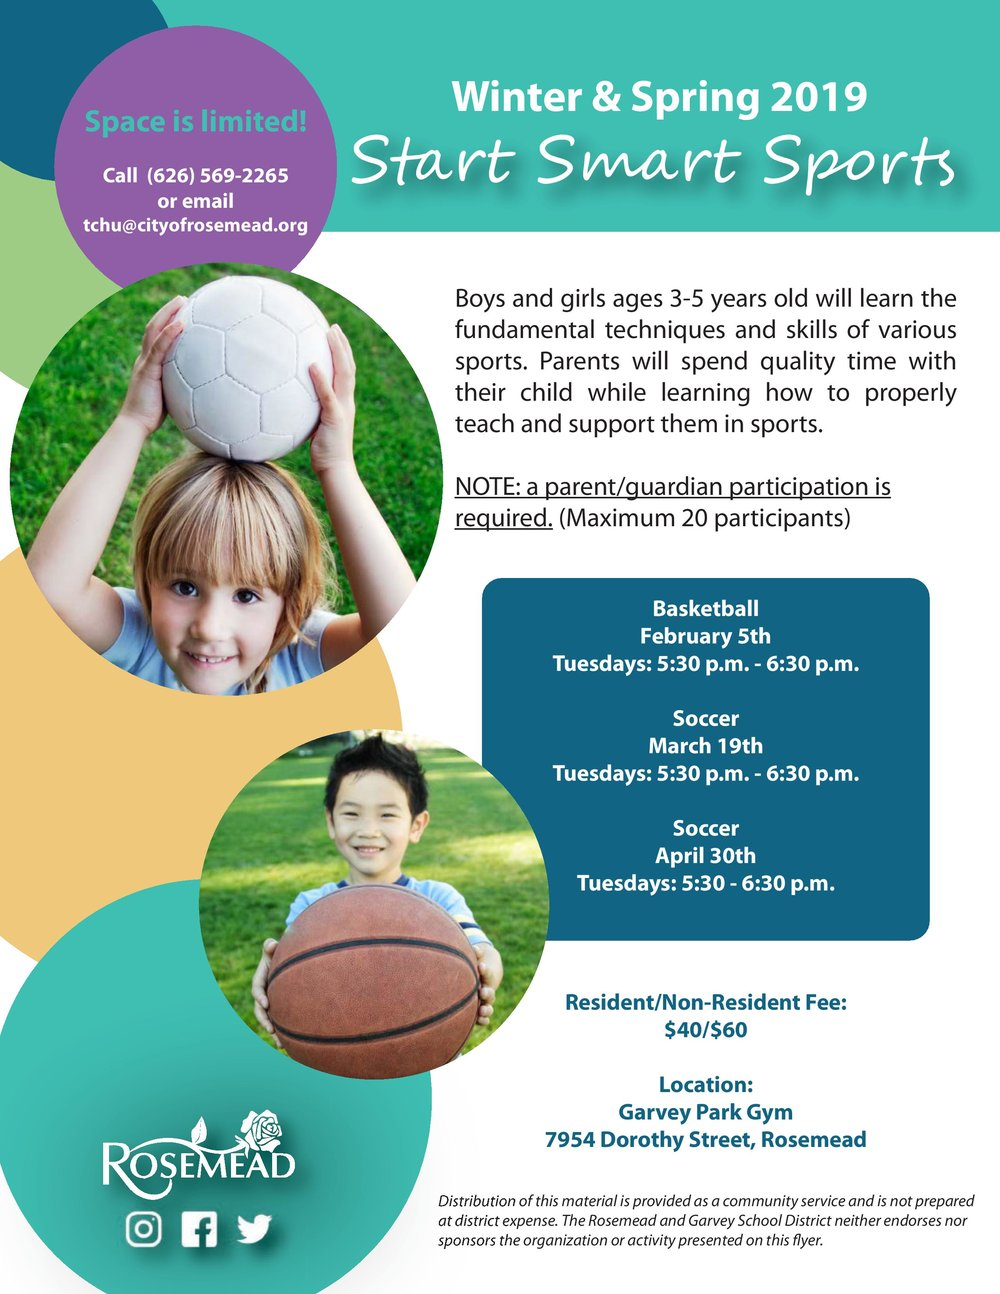 Winter & spring 2019 start smart sports - March 19th, 2019